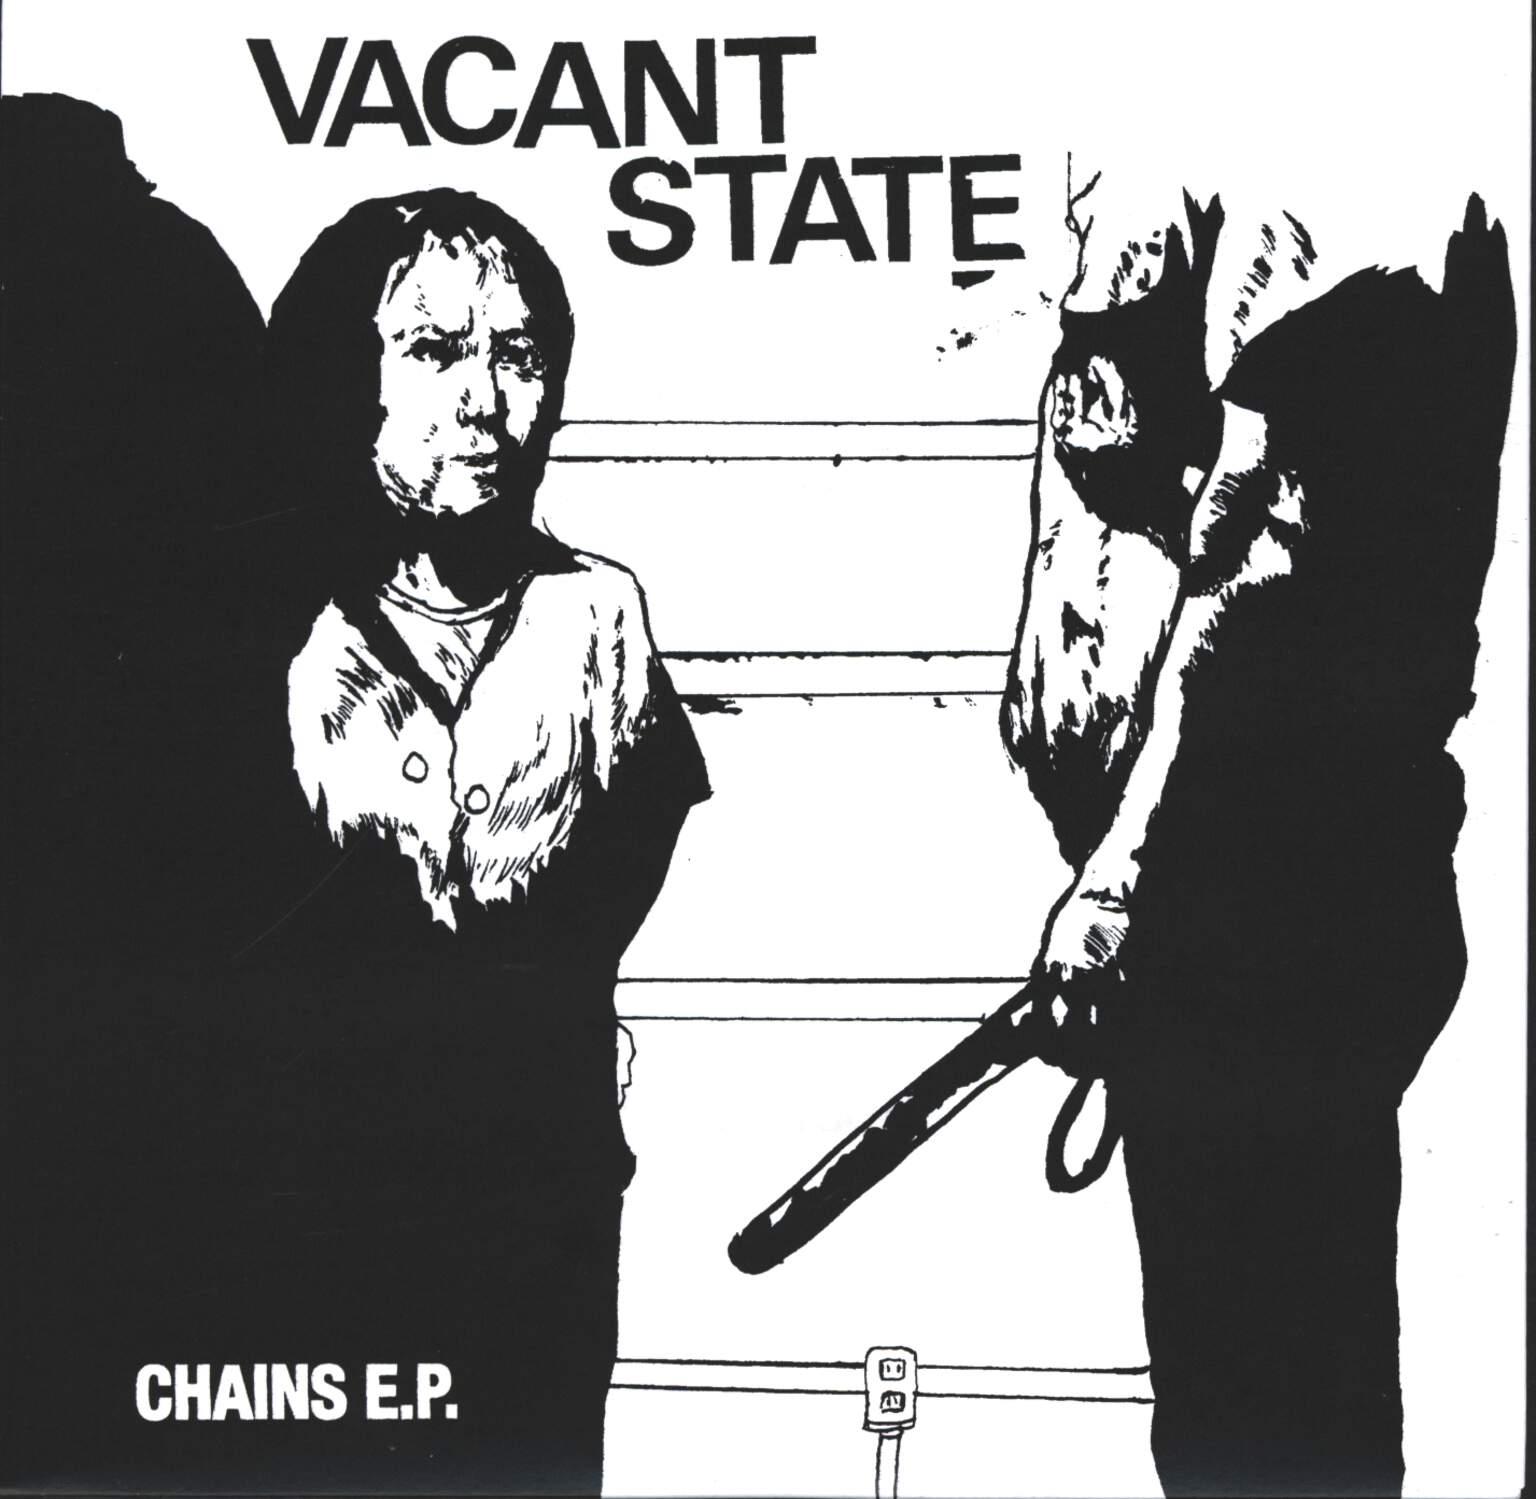 "Vacant State: Chains E.P., 7"" Single (Vinyl)"